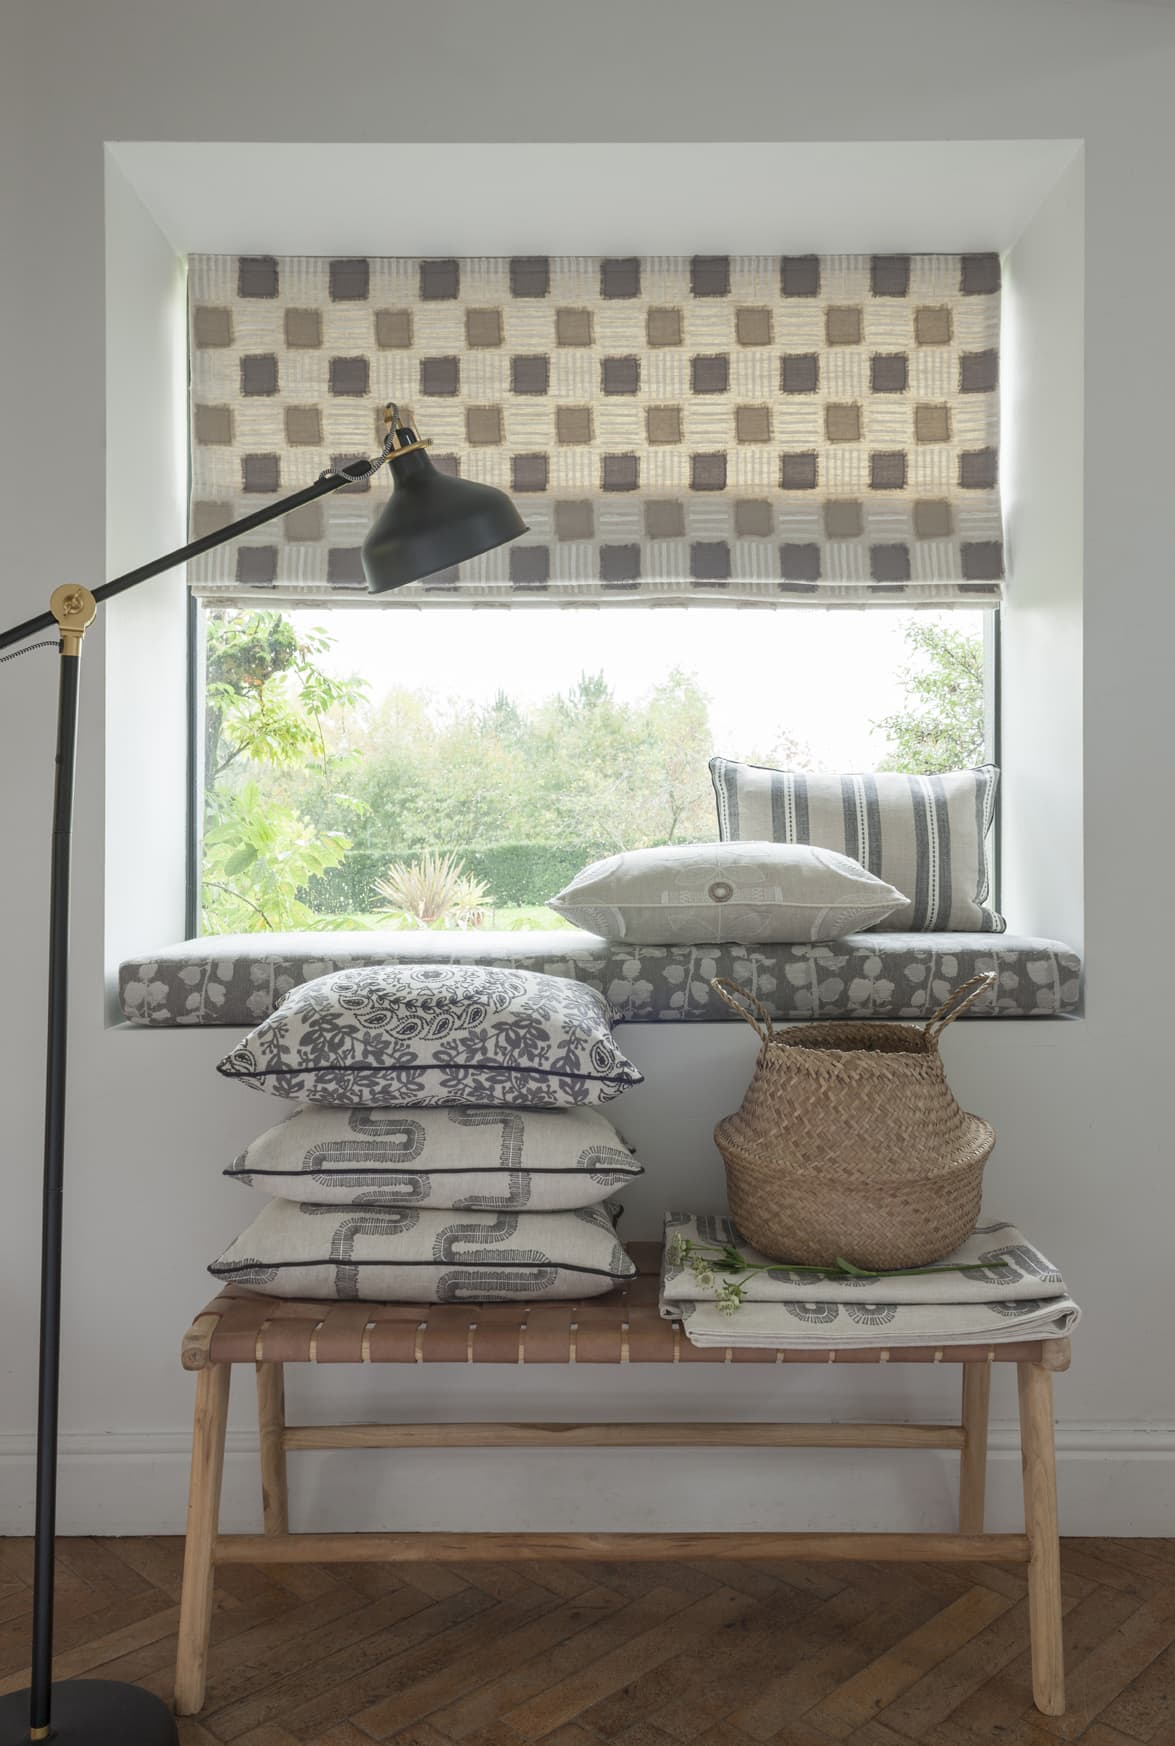 Cream and tan chequered fabric design in roman blinds